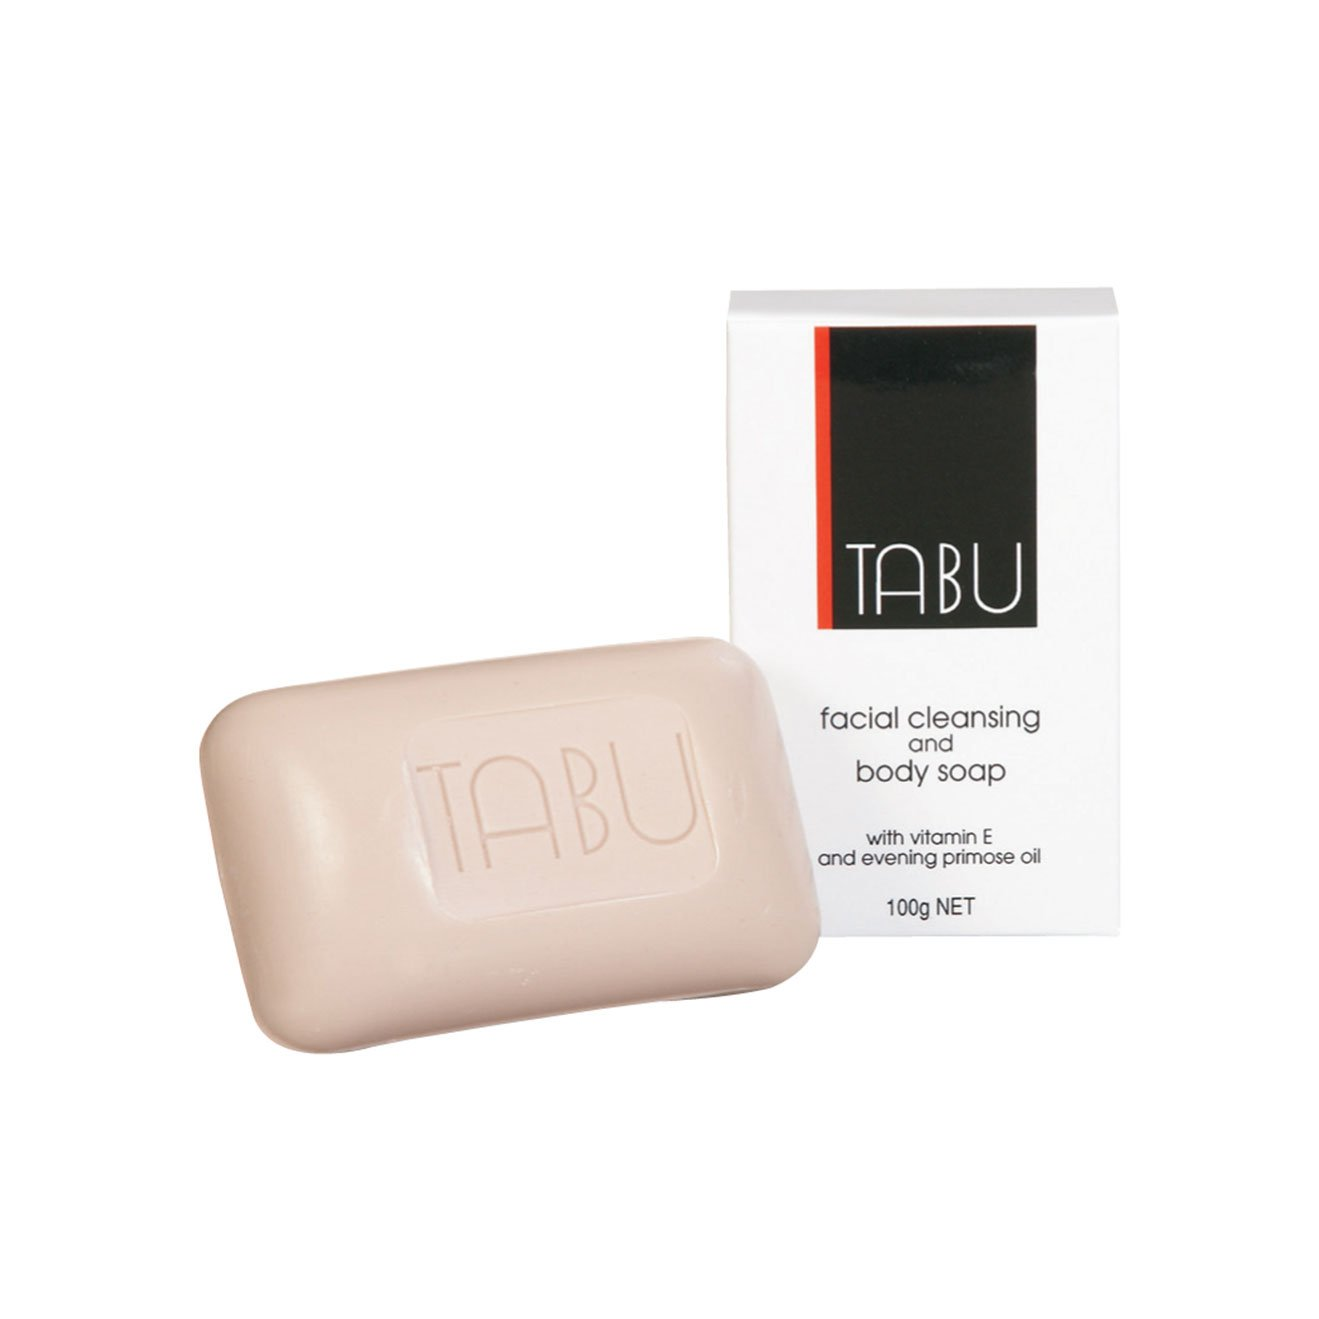 Tabu Facial & Body Soap 100g